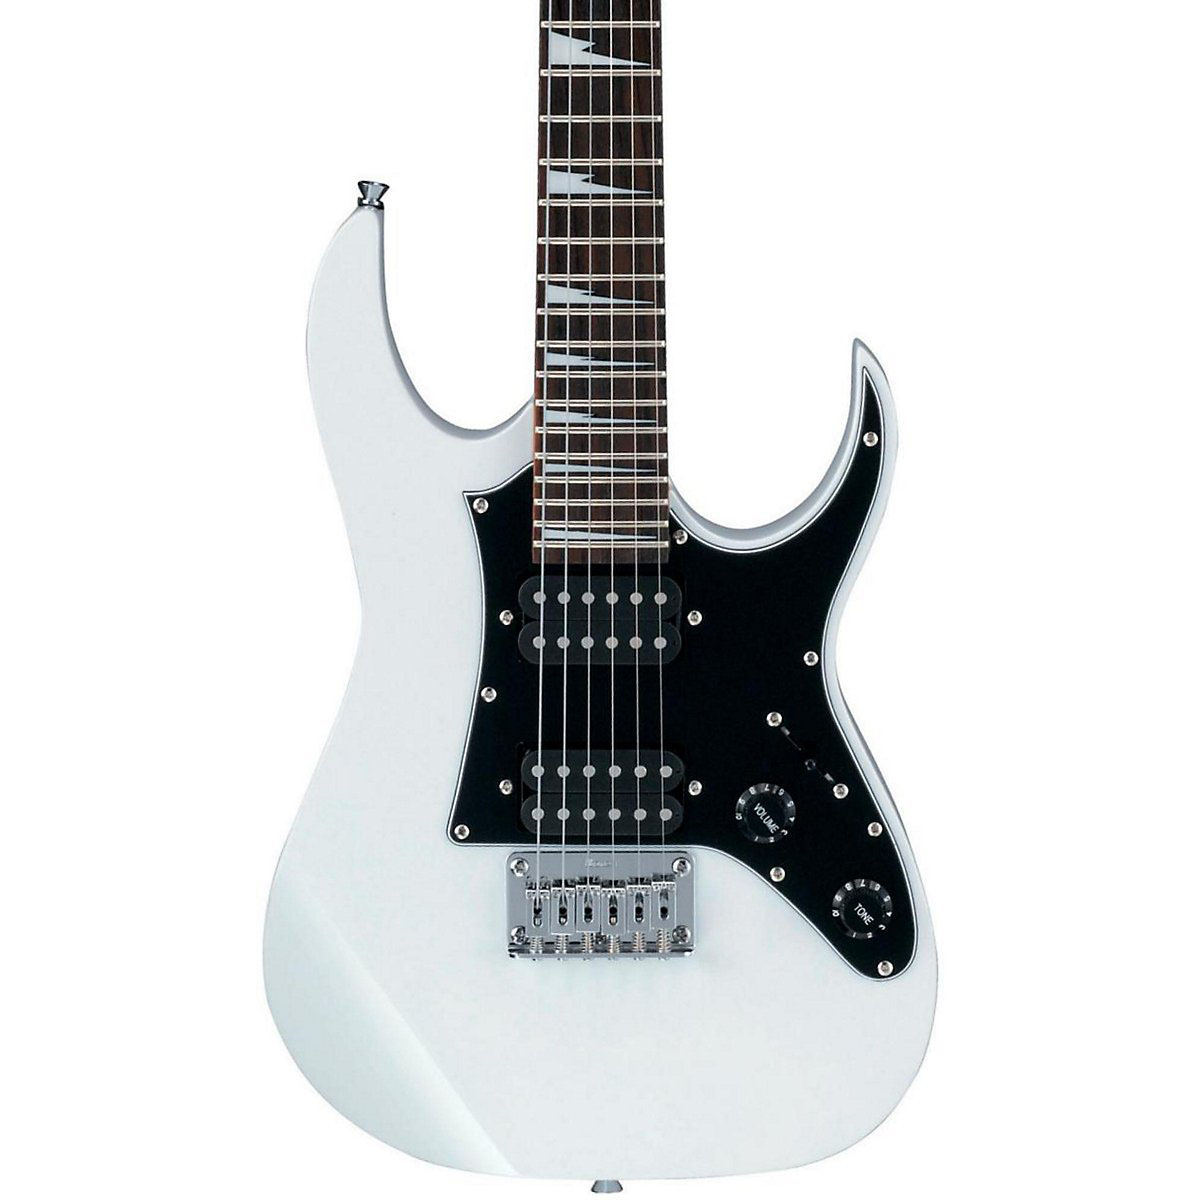 ibanez grgm21 gio mikro 3 4 size white electric guitar. Black Bedroom Furniture Sets. Home Design Ideas